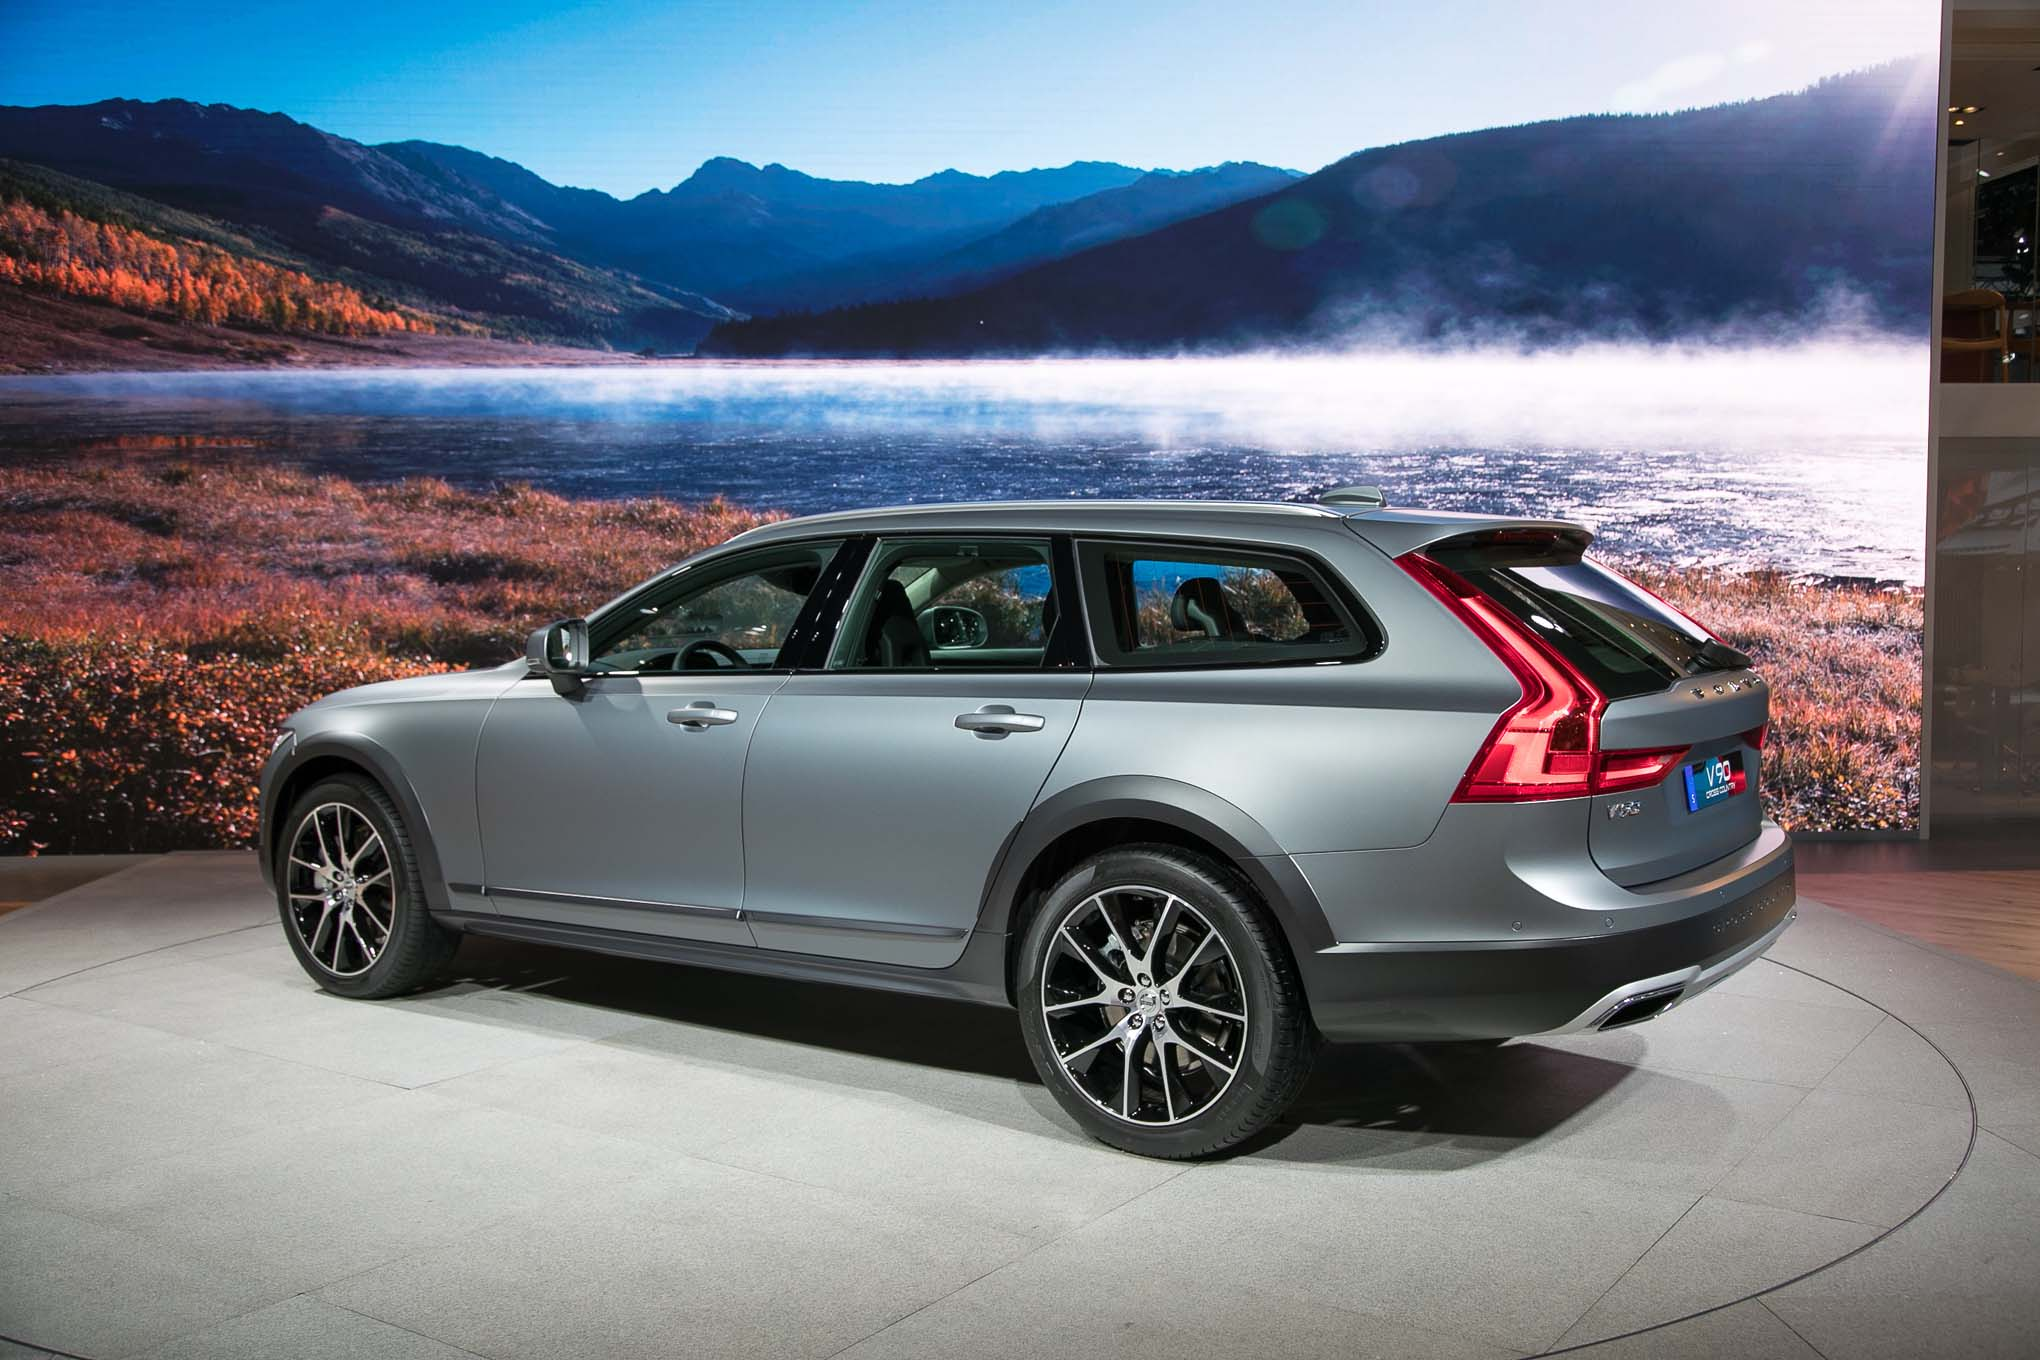 2017 Volvo V90 Cross Country Rear Three Quarter Motor Trend En Espanol